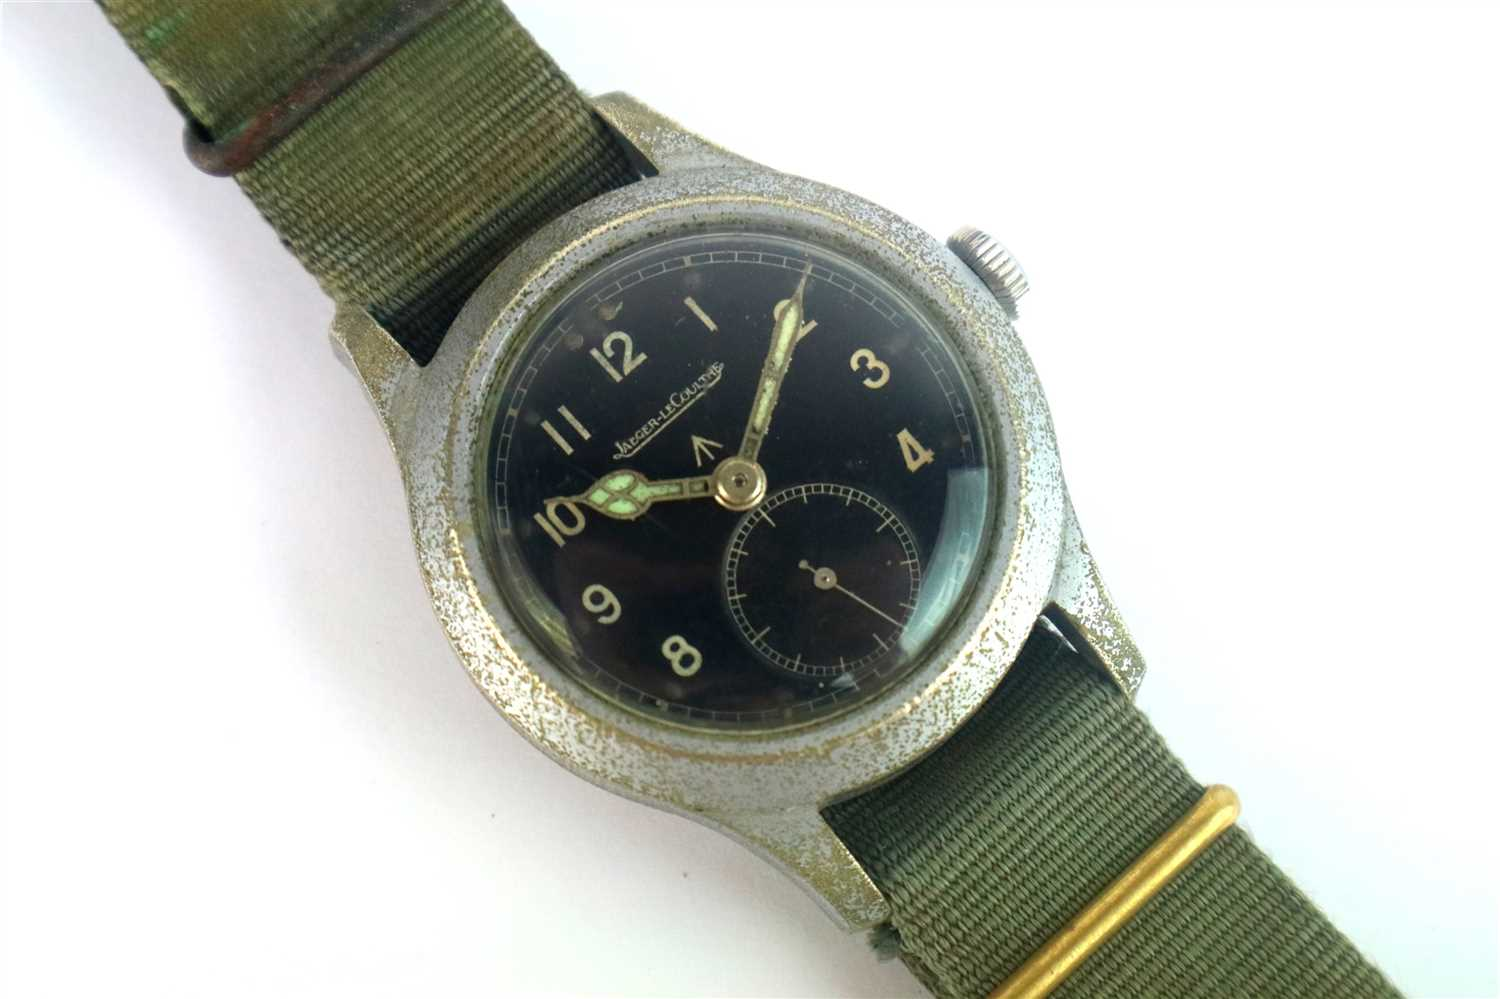 203 - A Gentleman's Jaeger-LeCoultre Military Wristwatch